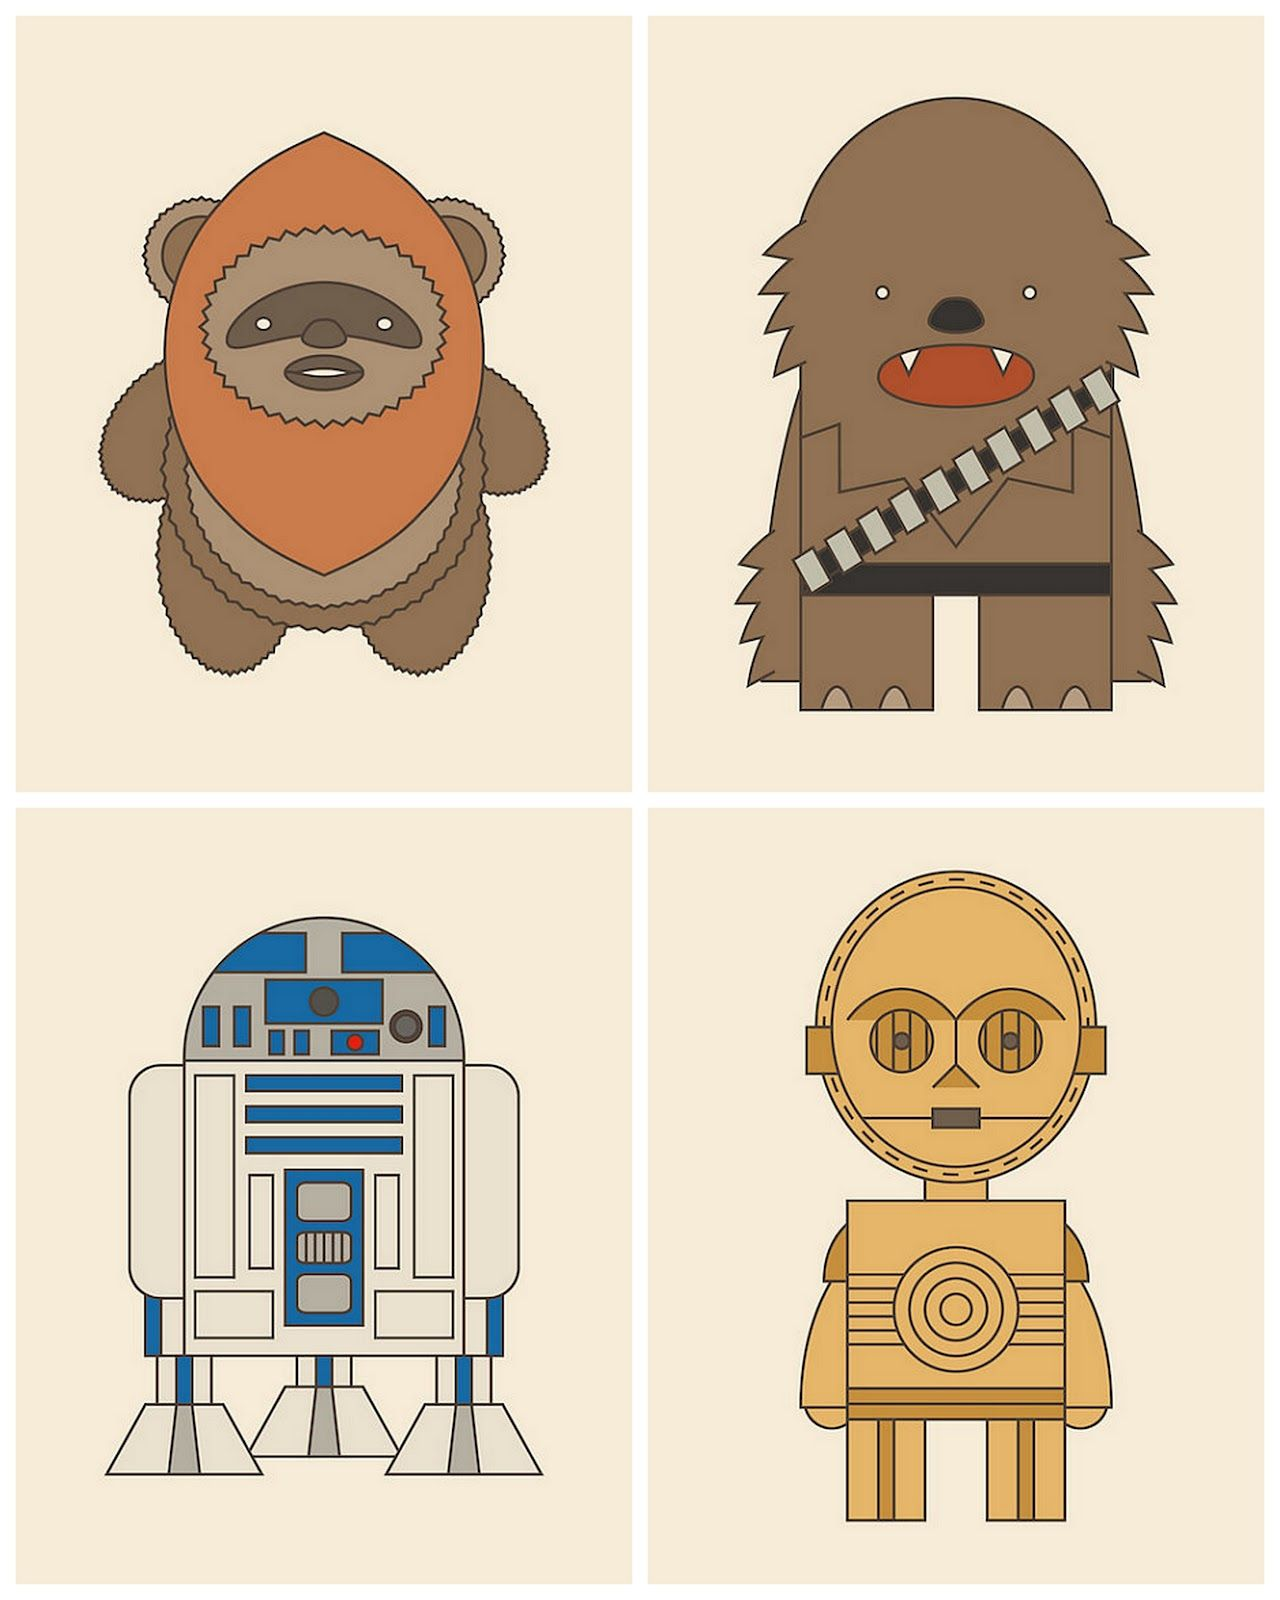 Baby Star Wars images for shirts Pinterest